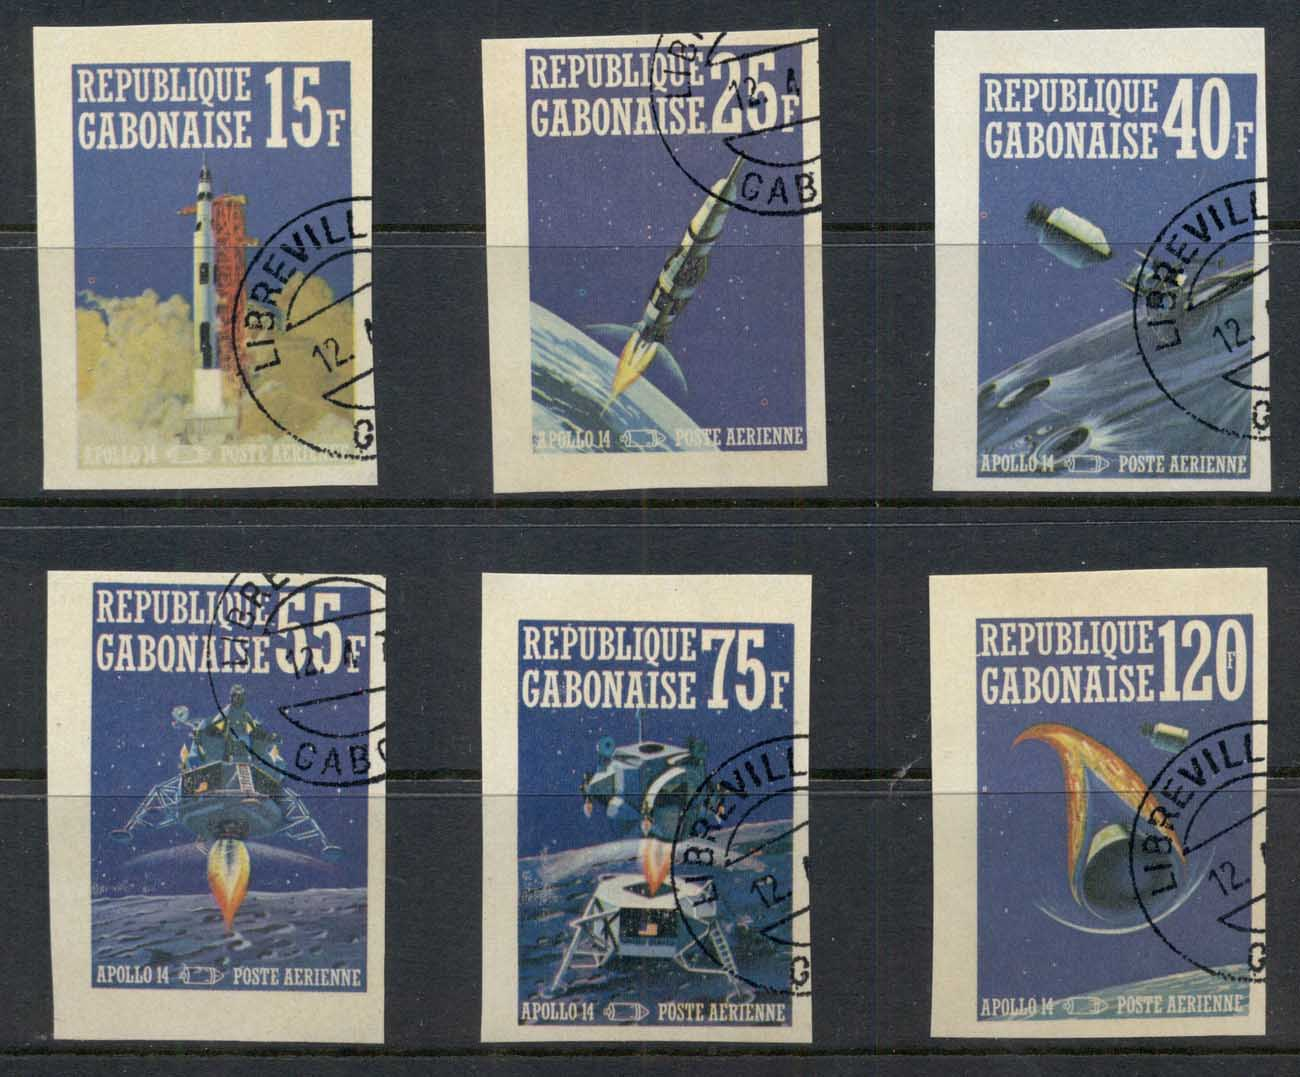 Gabon 1971 Apollo 14 Space Mission IMPERF CTO